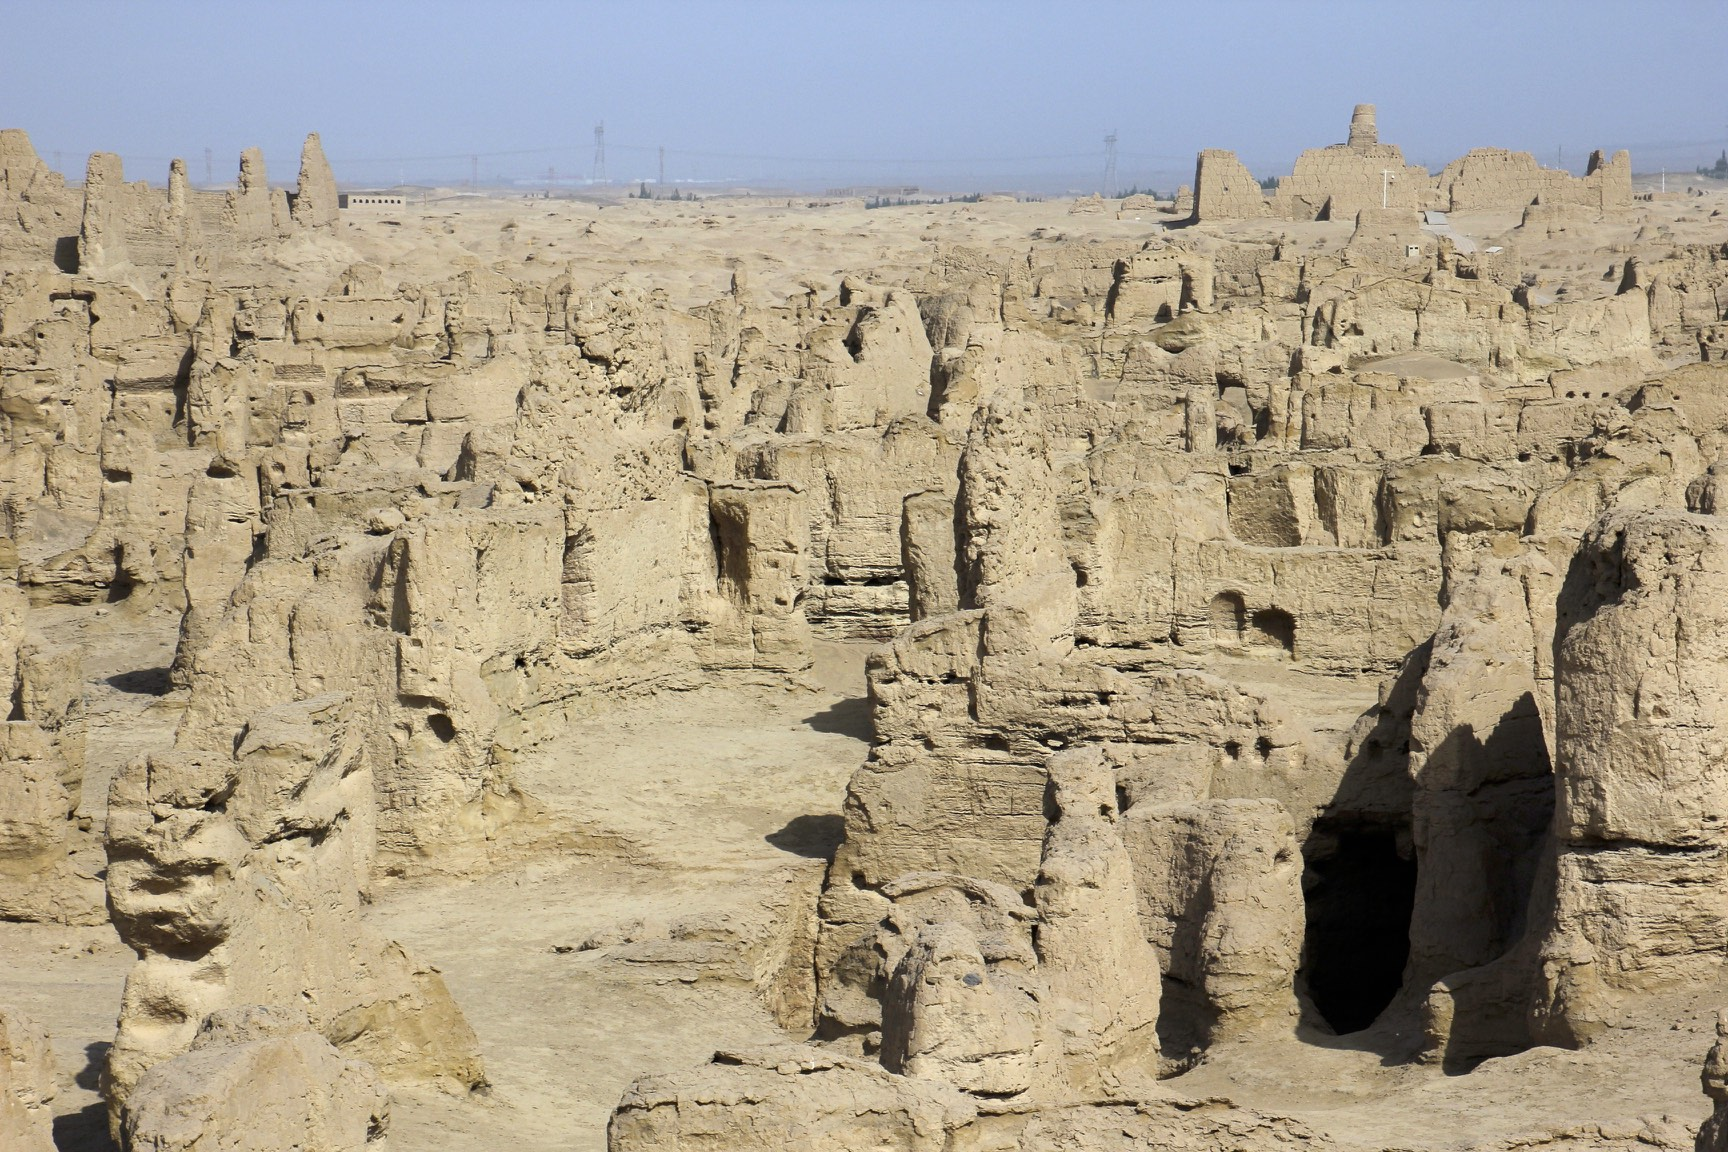 The Jiaohe city Ruins